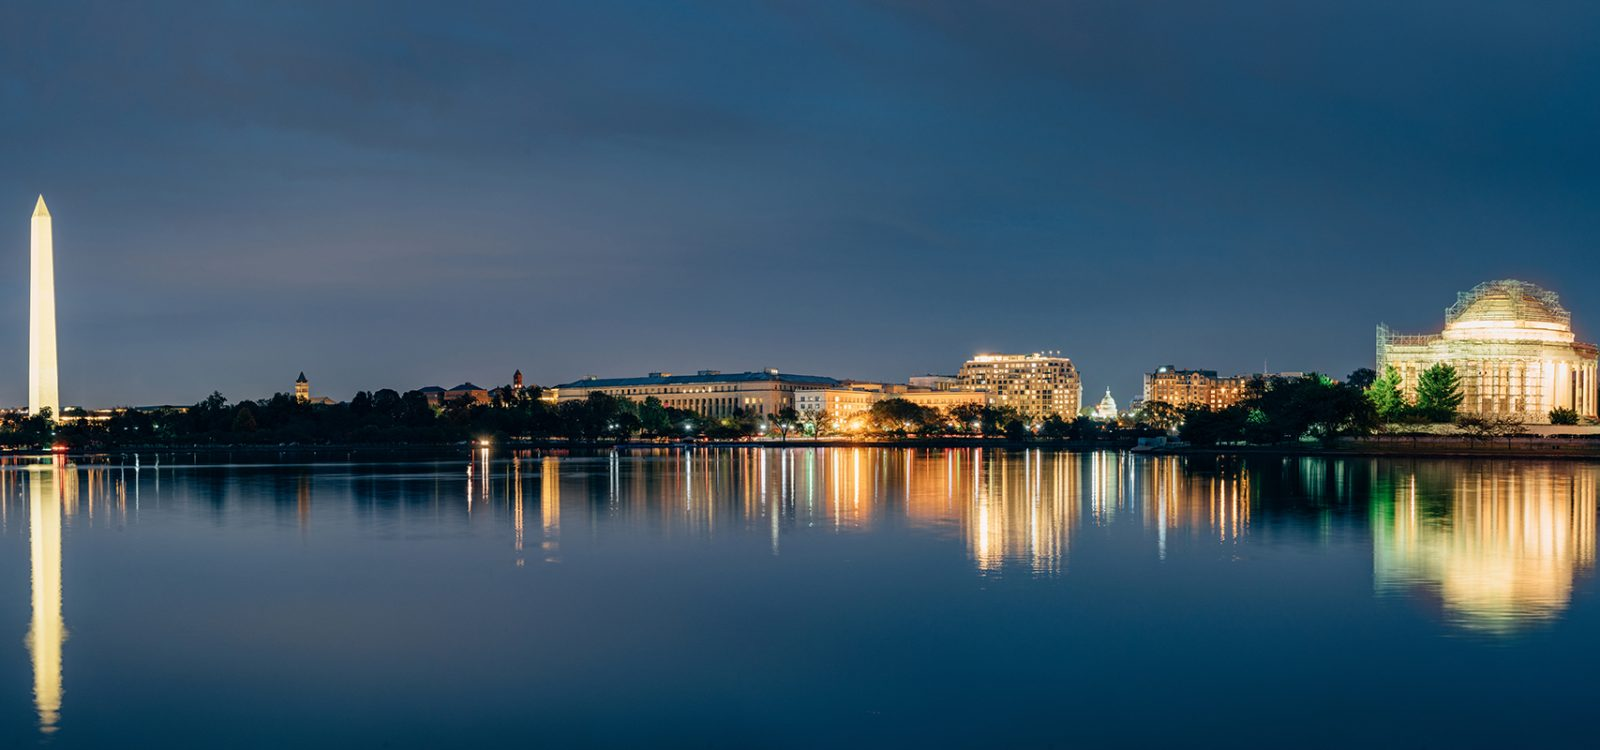 Washington DC Cityscapes Thomas Jefferson Memorial